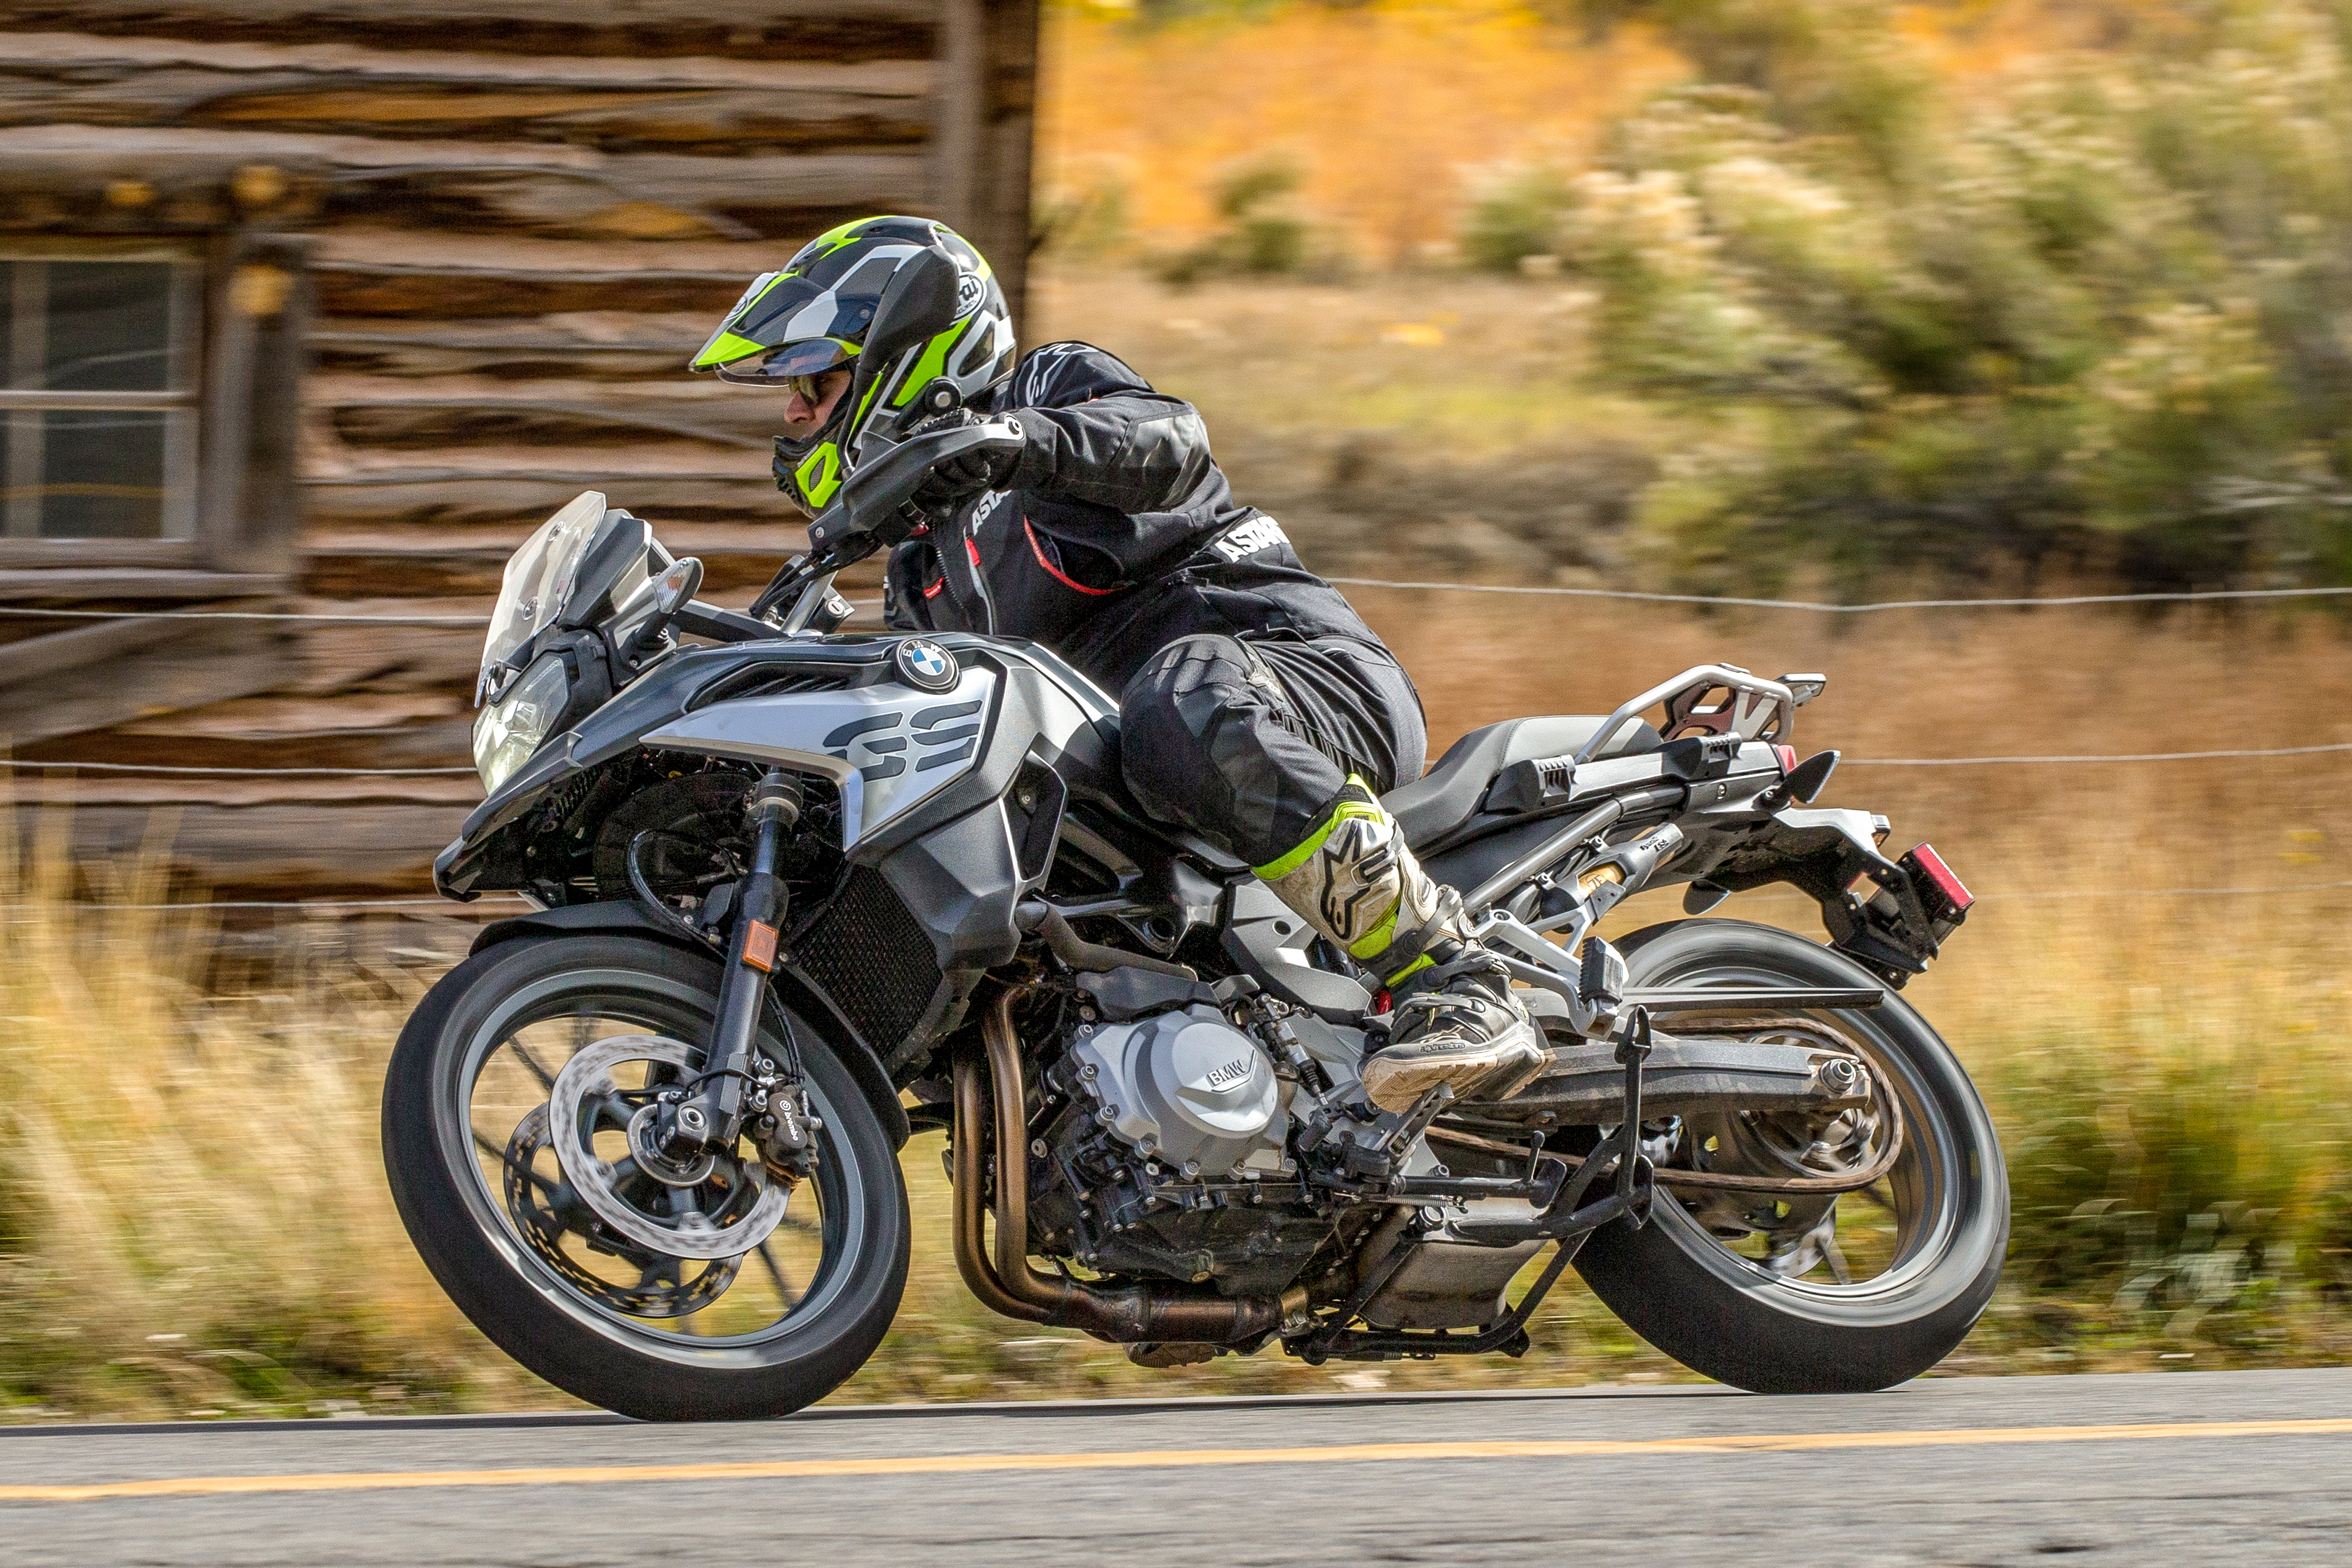 2019 Bmw F 750 Gs First Ride Review Revzilla